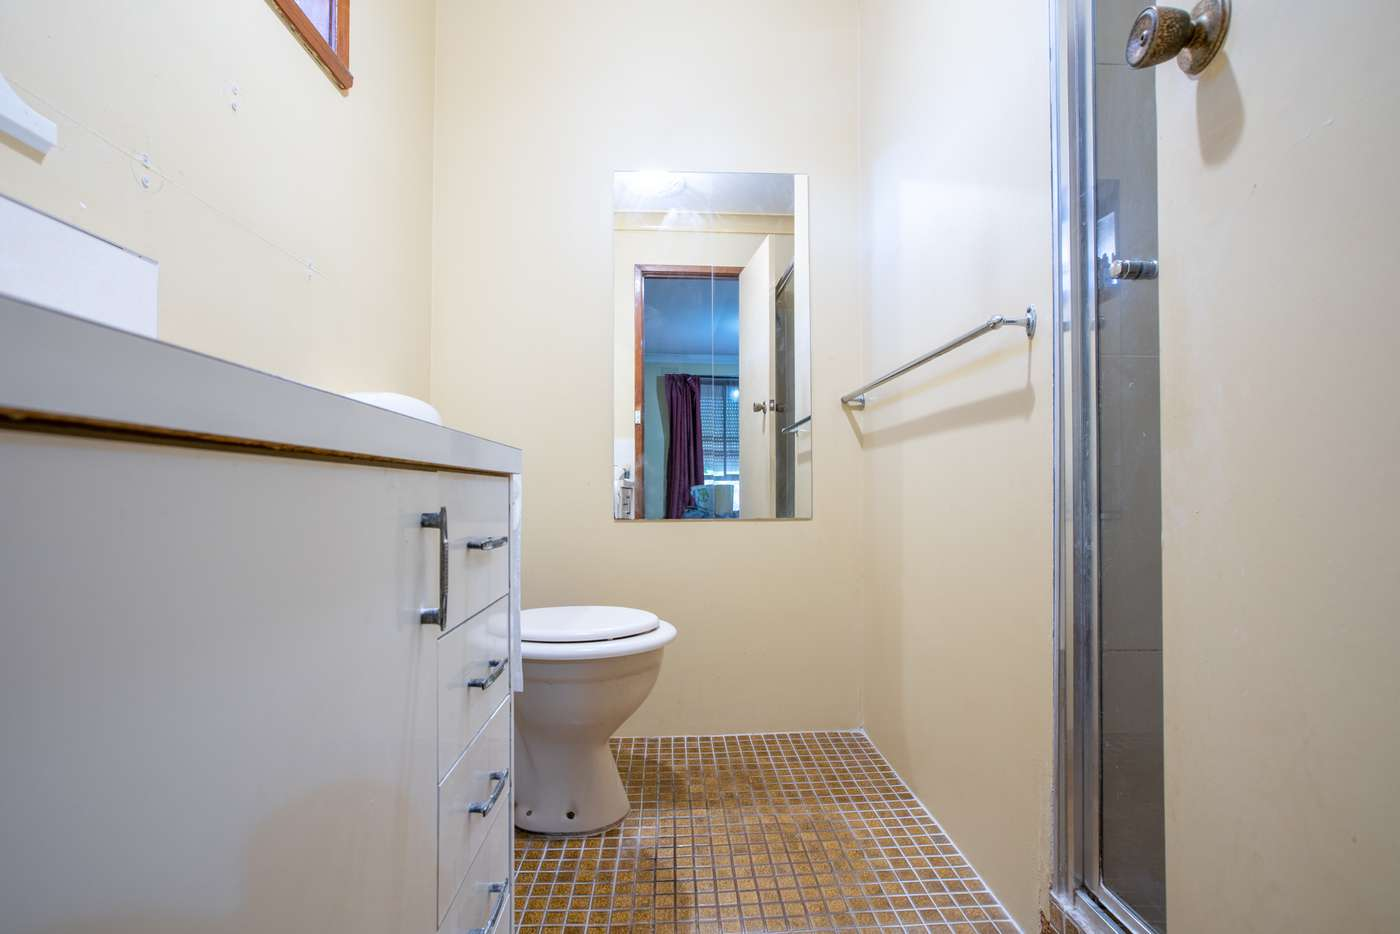 Fifth view of Homely house listing, 4 Ruby Road, Wodonga VIC 3690